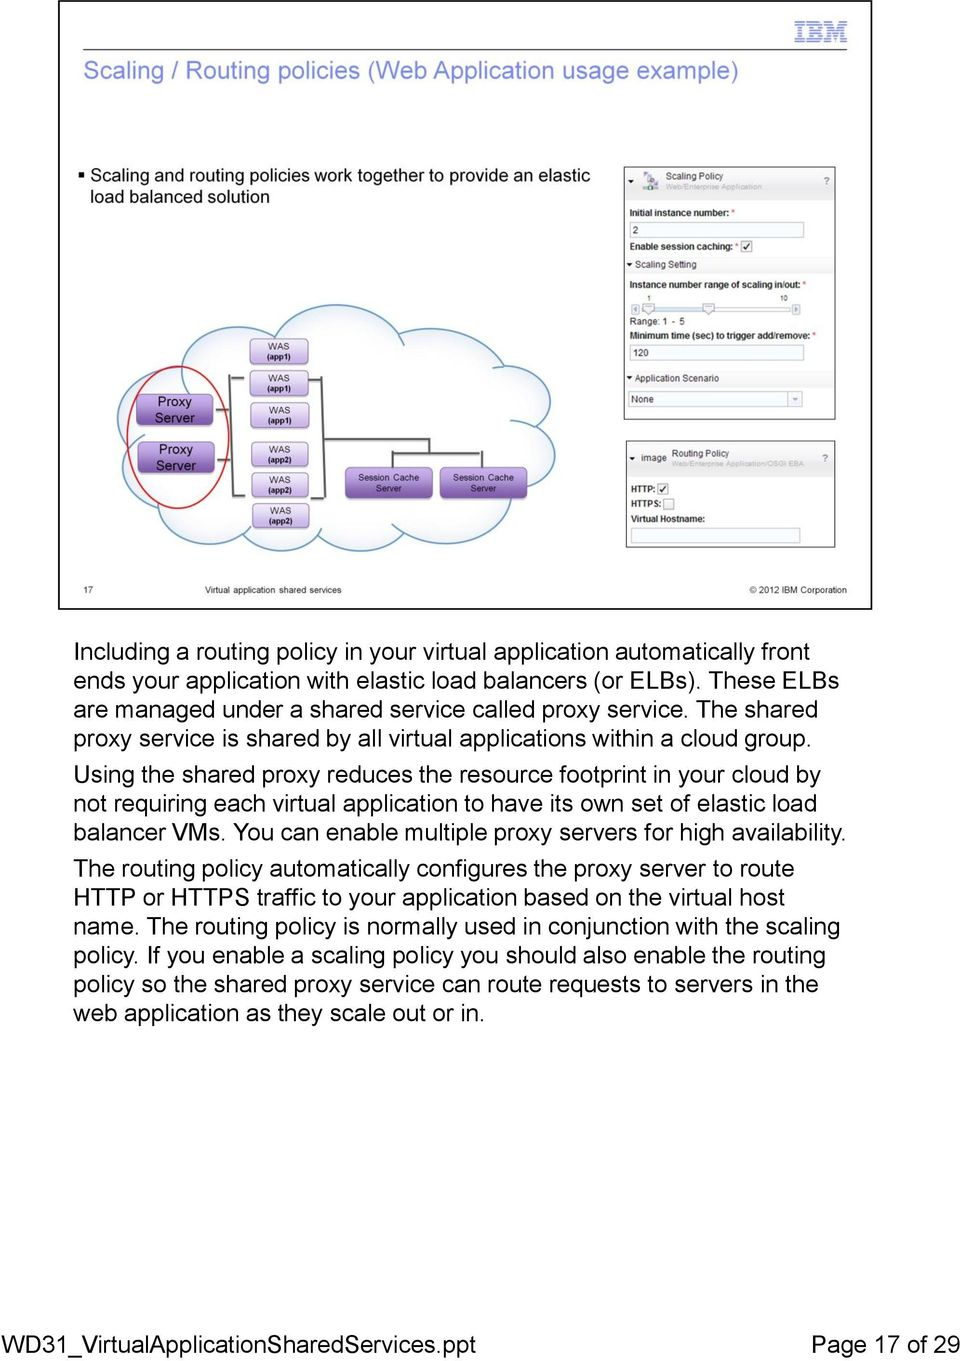 Using the shared proxy reduces the resource footprint in your cloud by not requiring each virtual application to have its own set of elastic load balancer VMs.